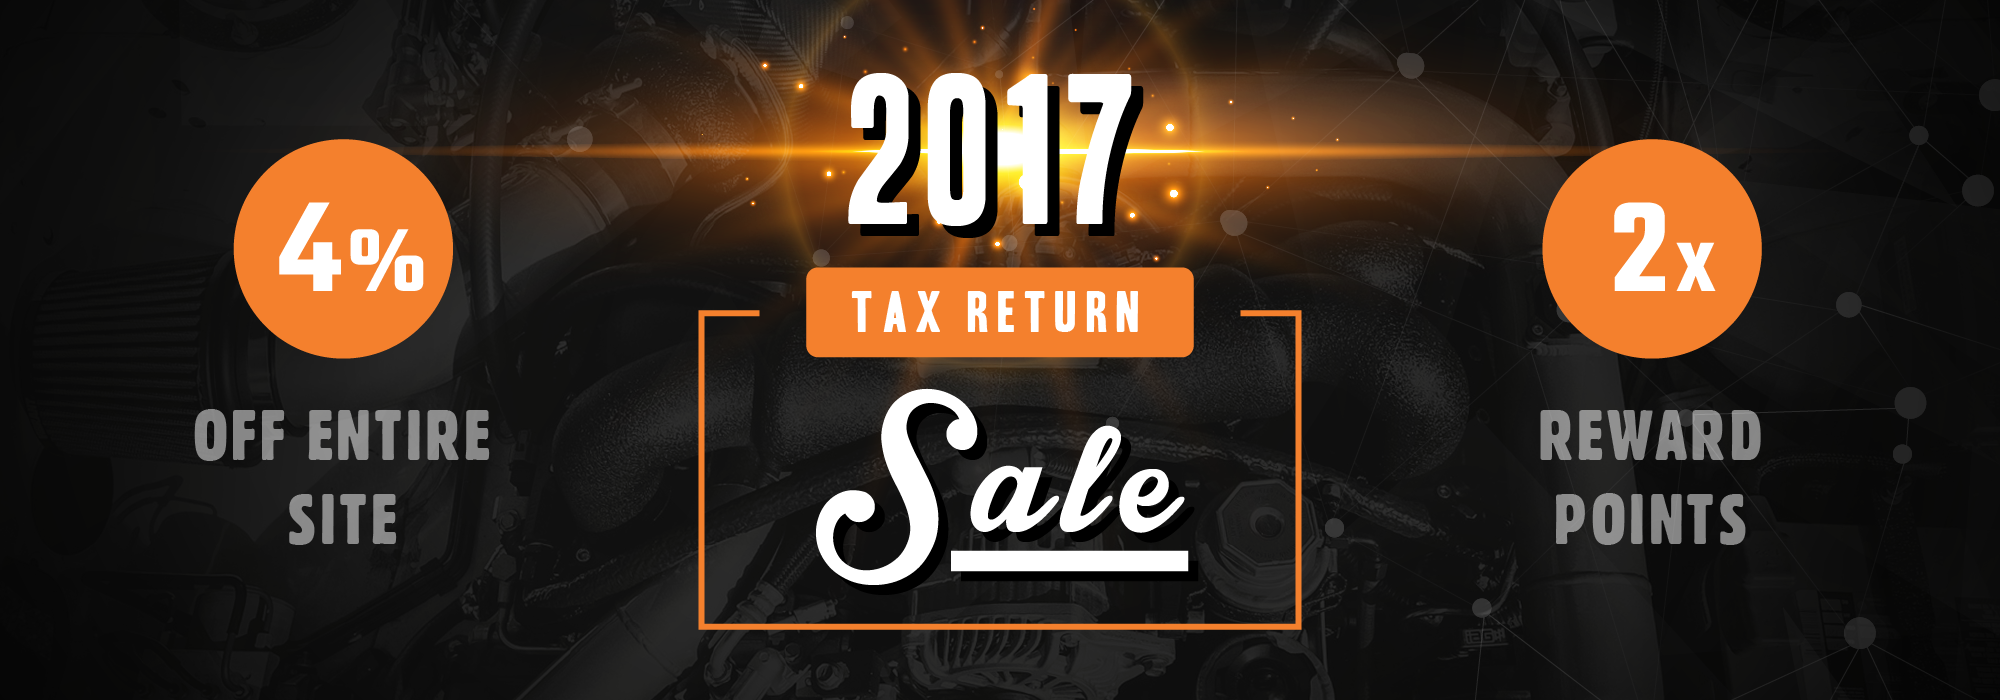 2017-tax-return-sale-home-page.png